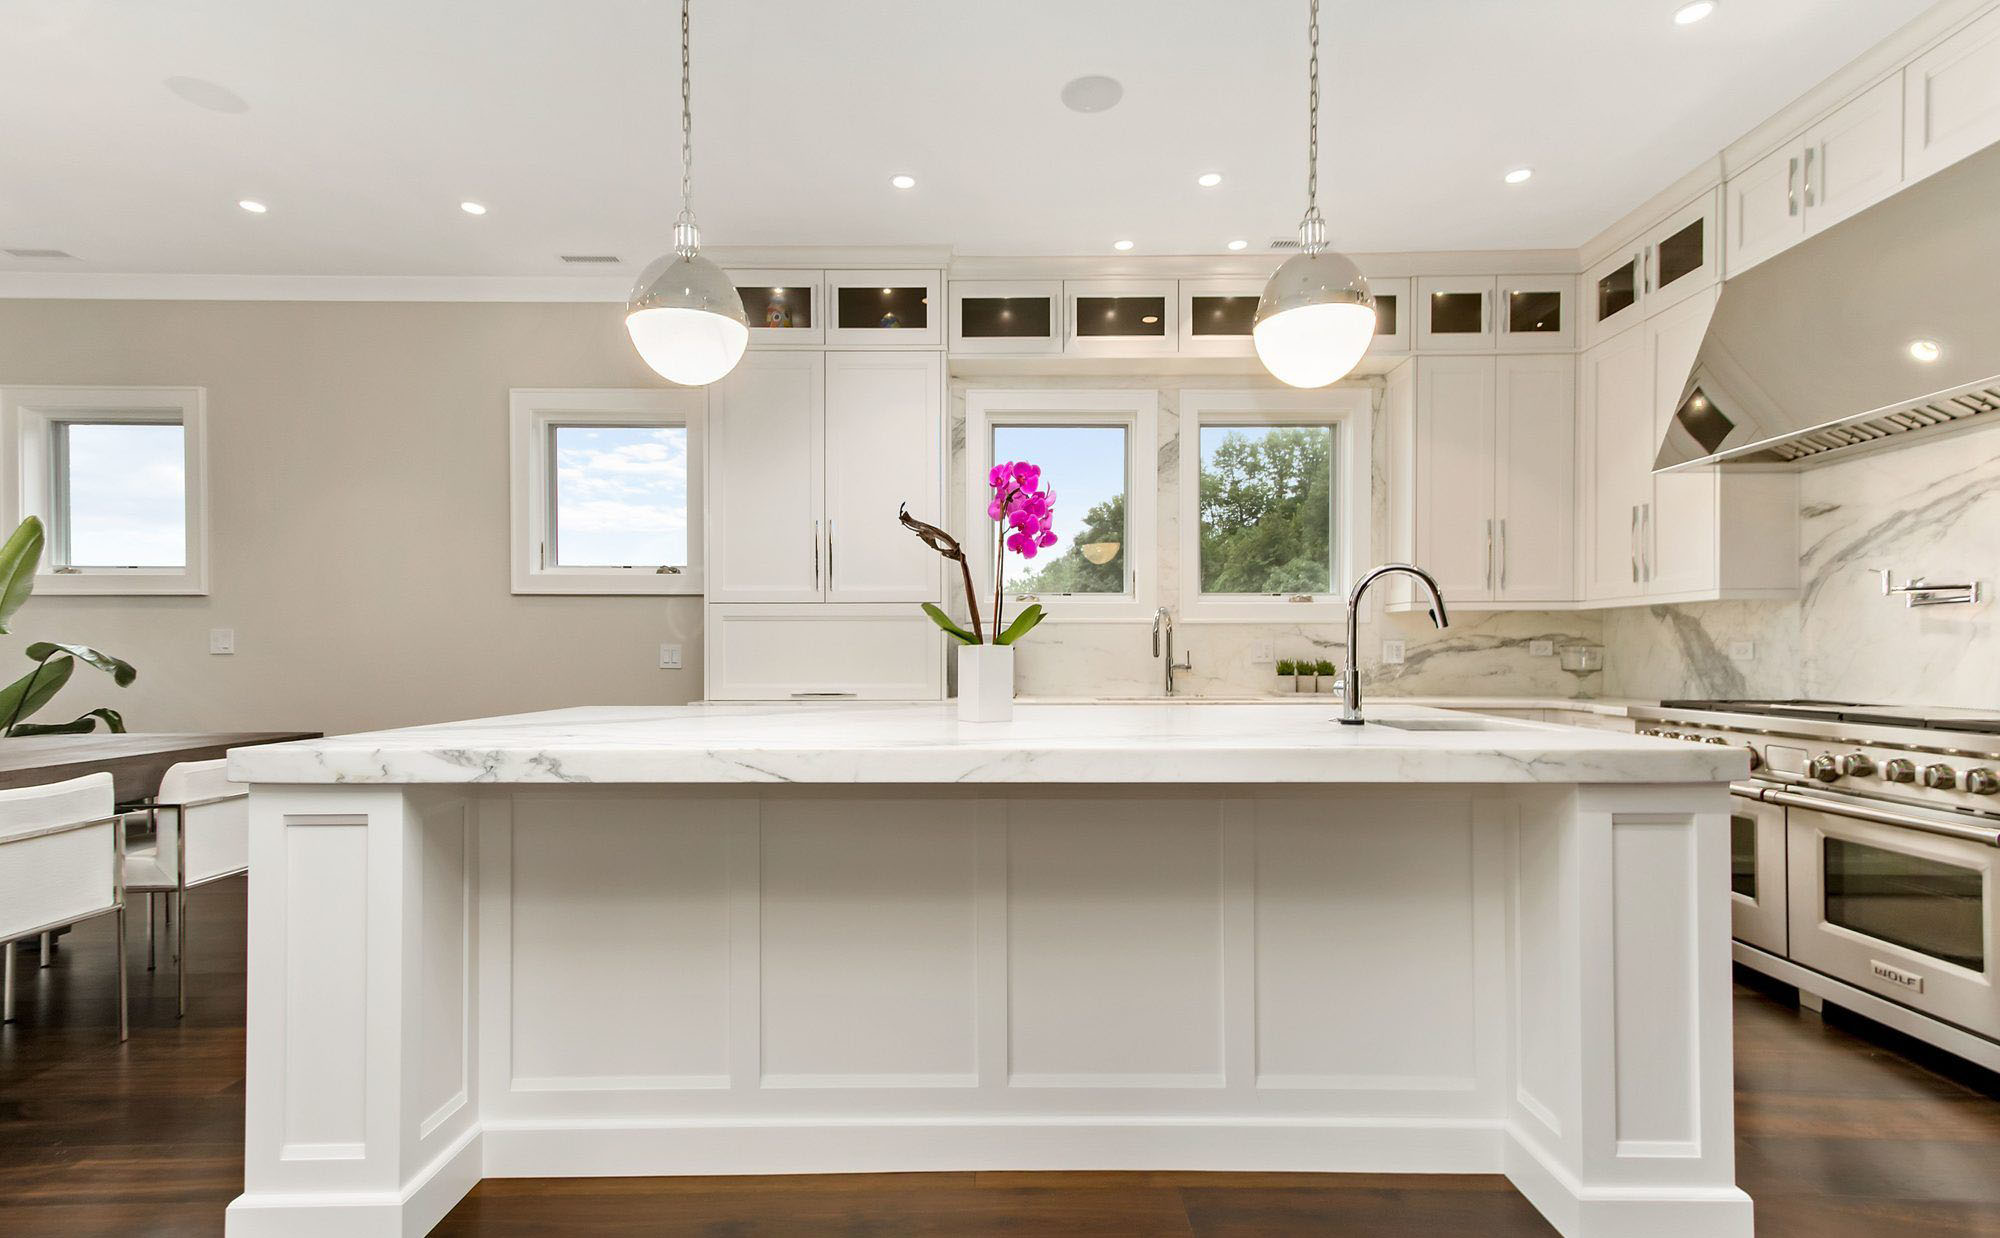 White kitchen cabinets run all the way to the ceiling with small glass face uppers.